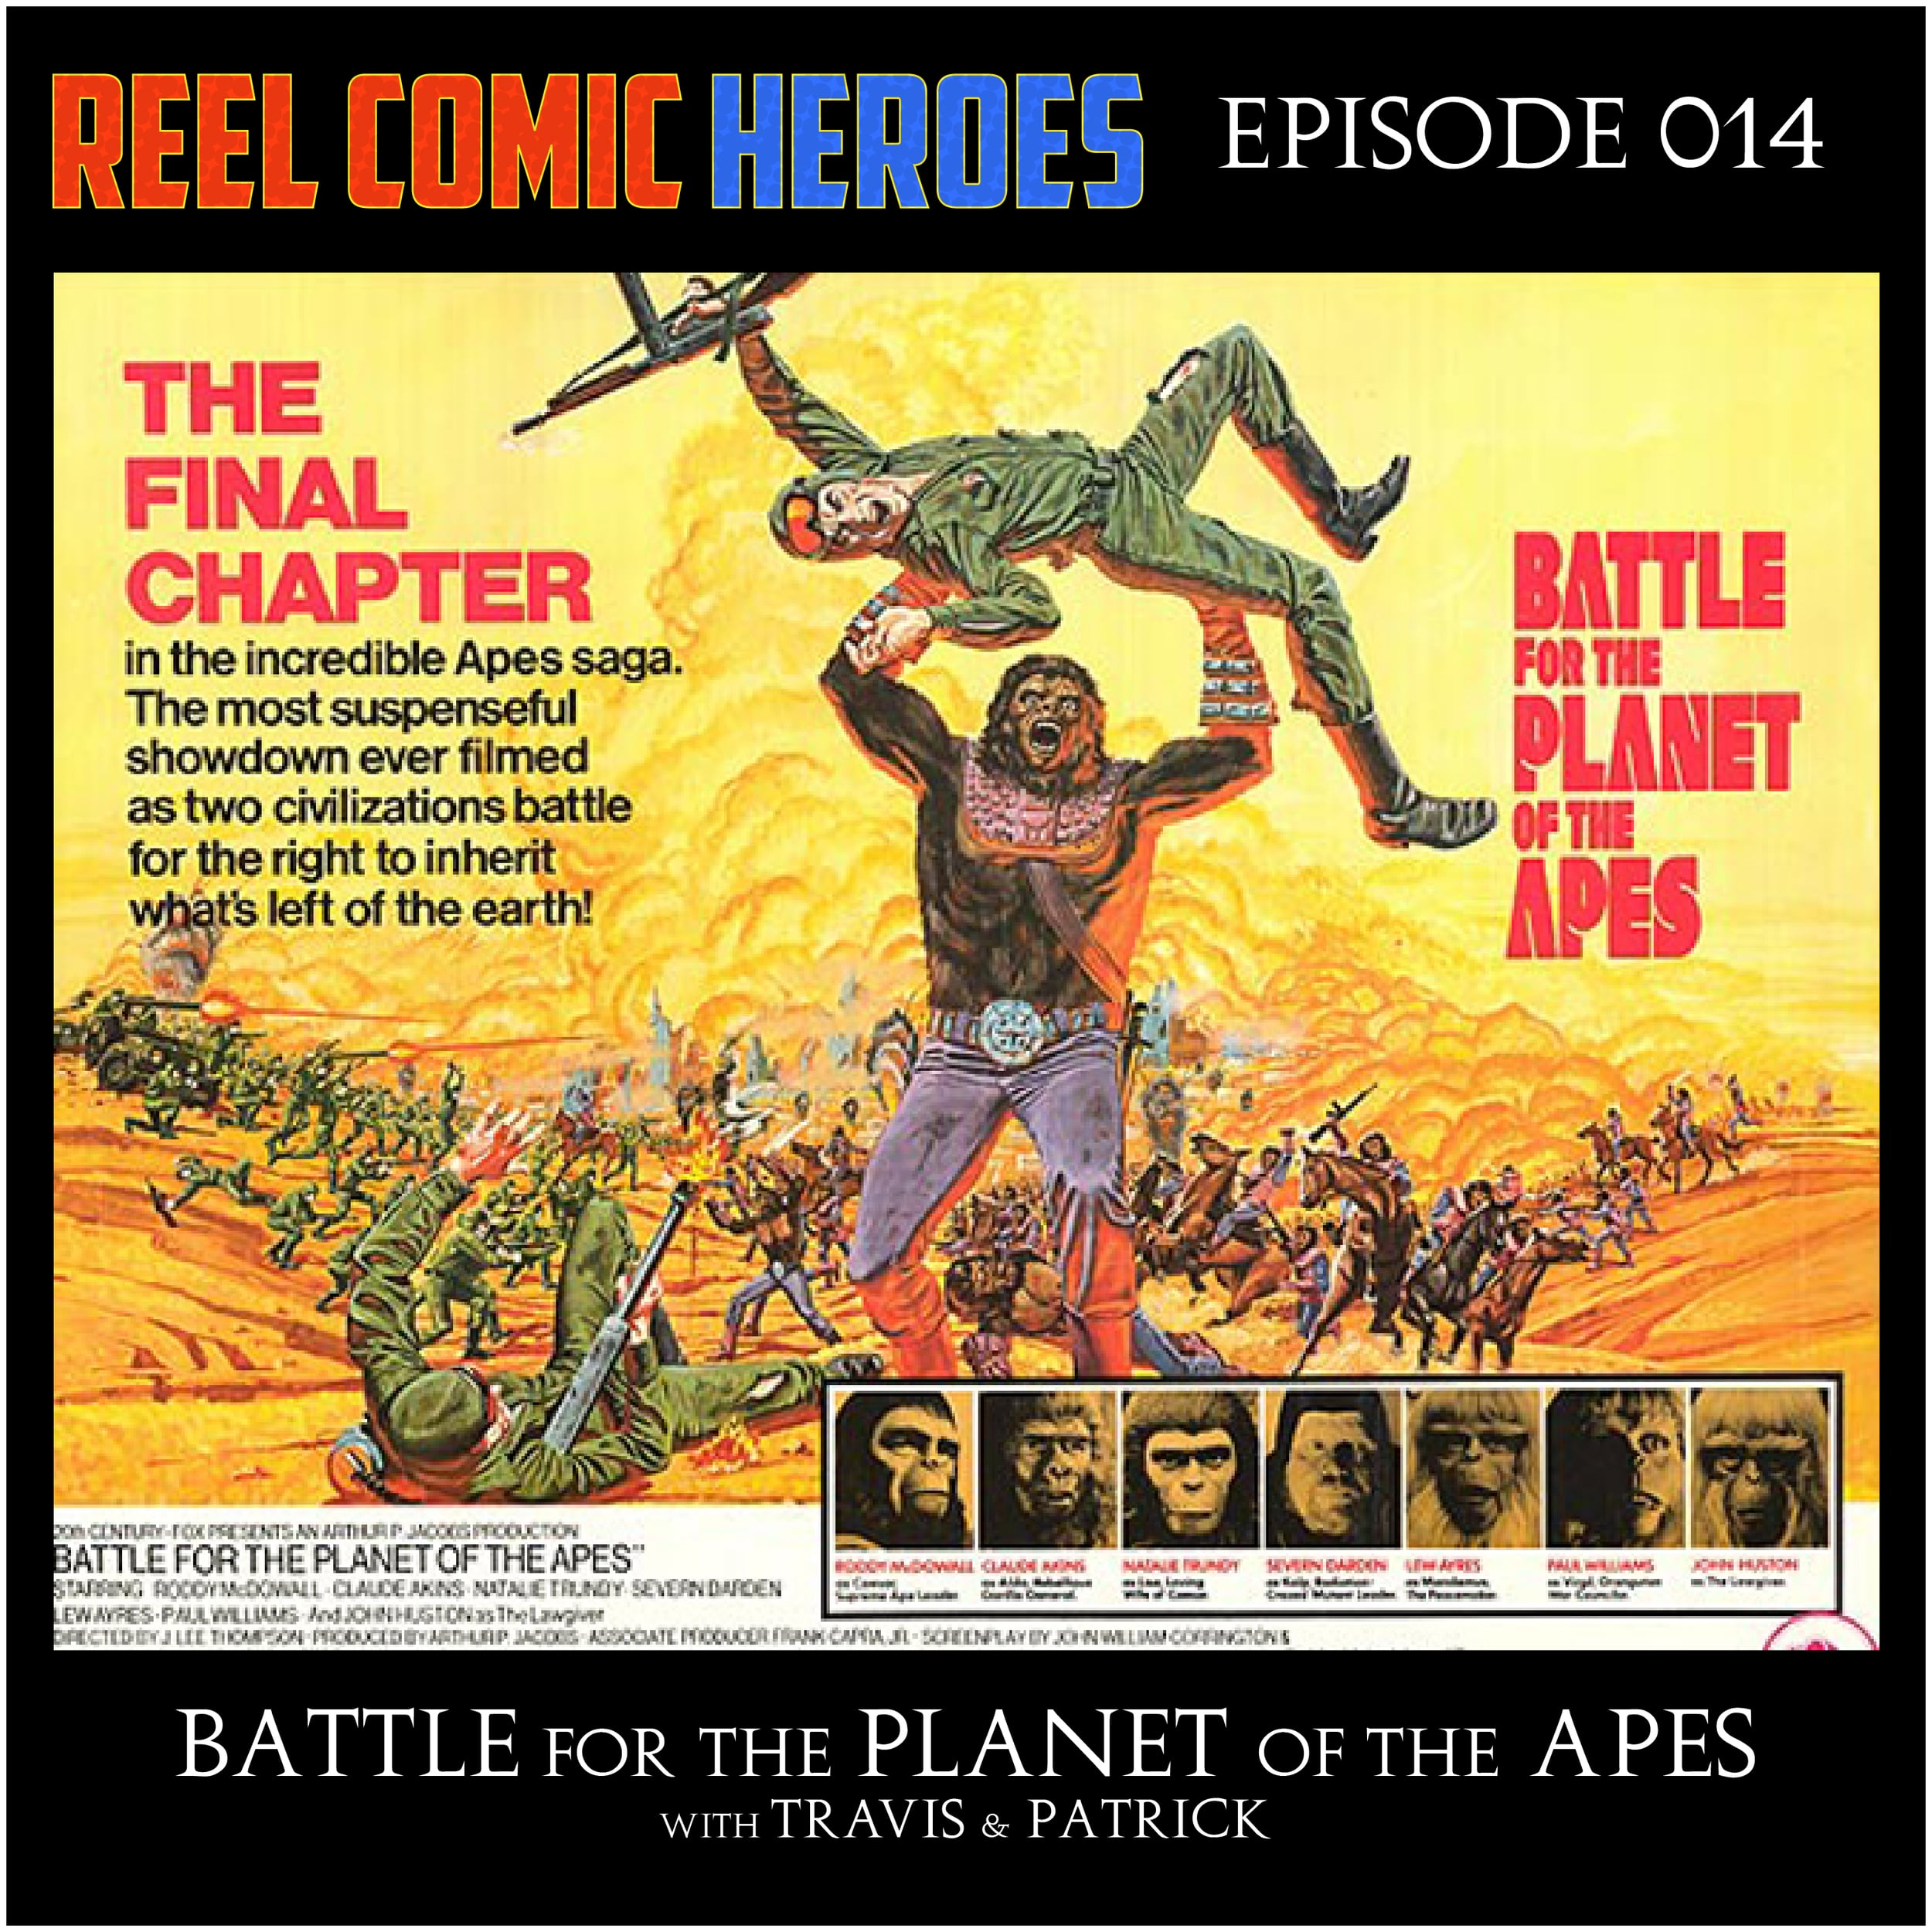 episode014_BattleForThePlanetOfTheApes.jpg